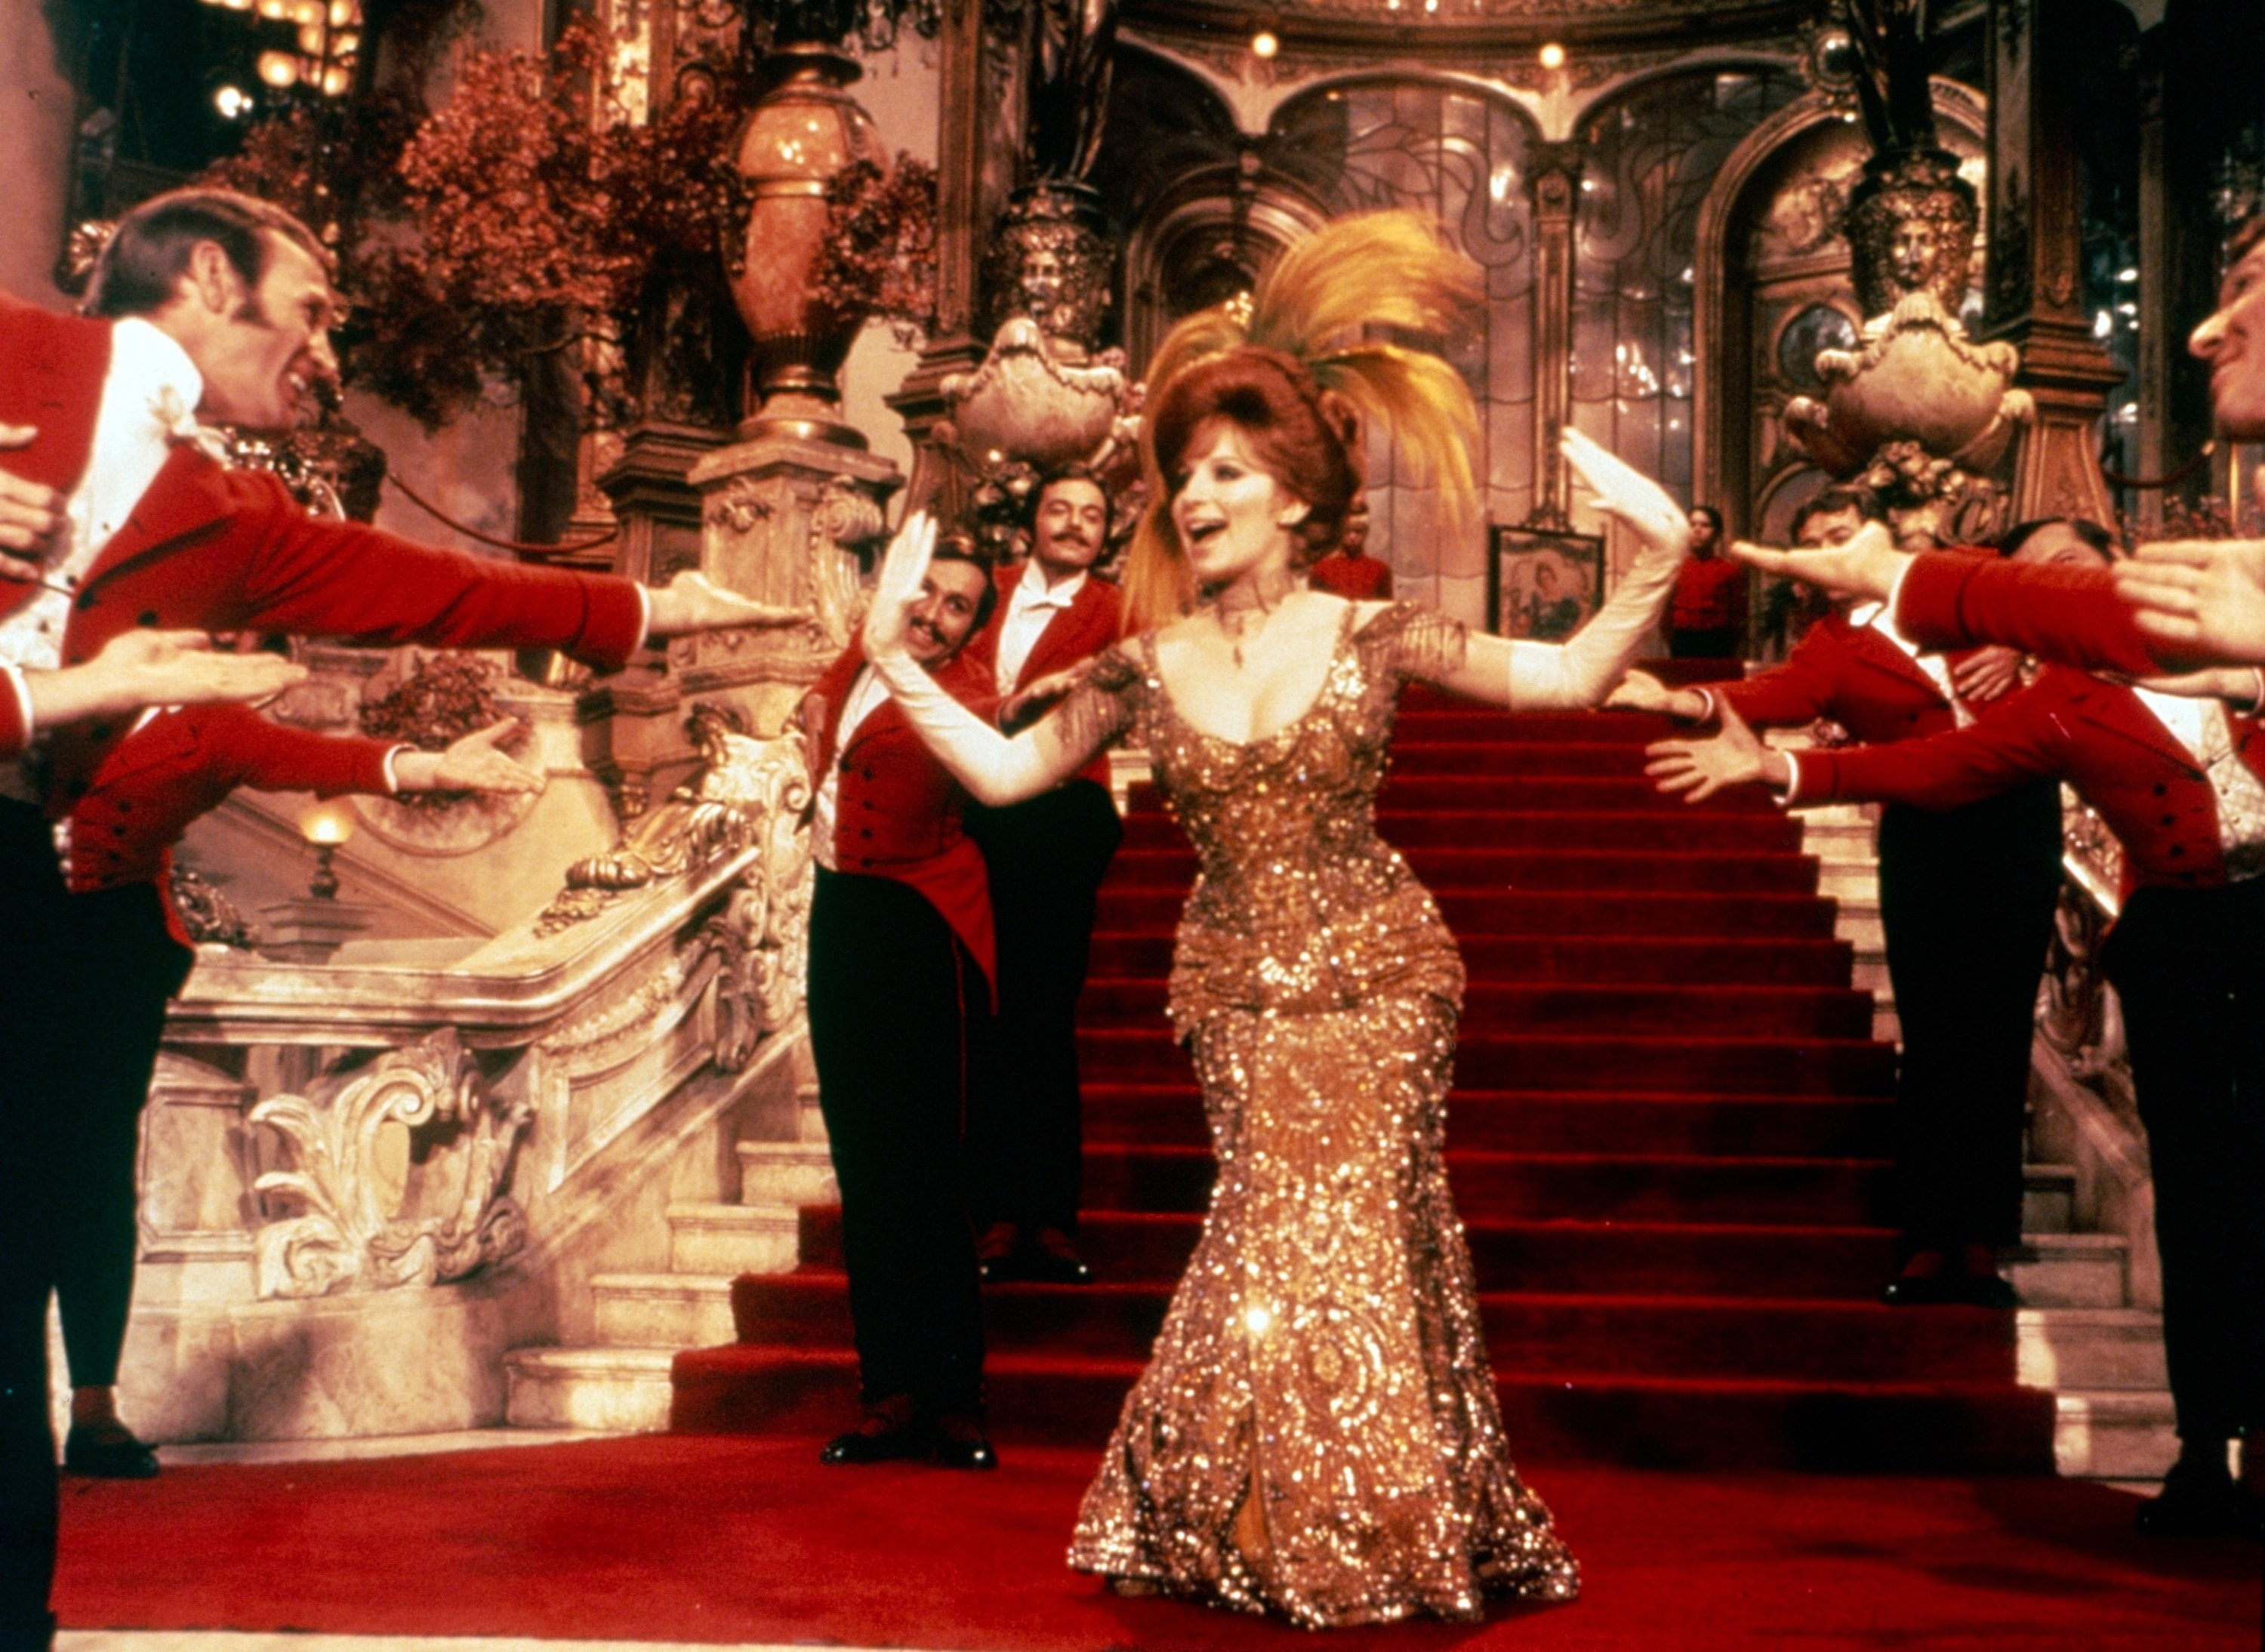 Barbra Streisand as Dolly sings in front of a large, red-carpeted staircase